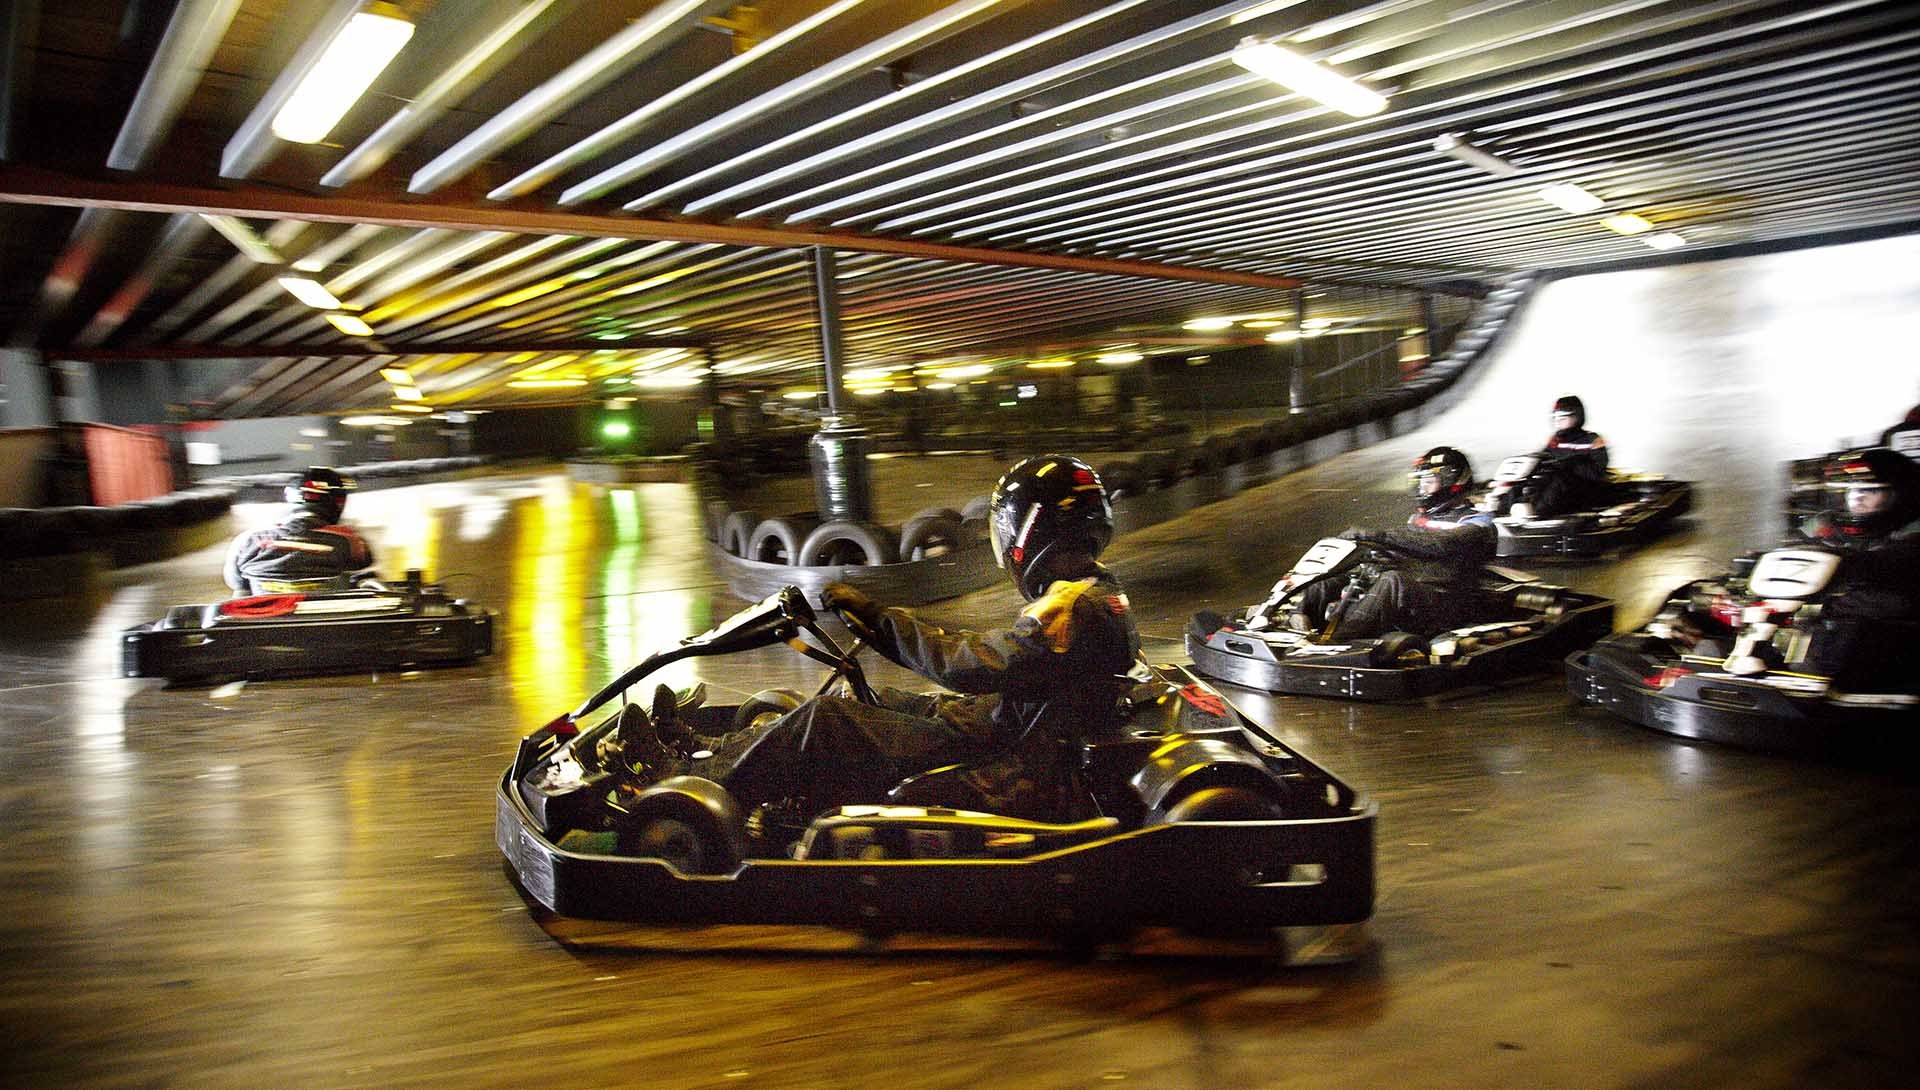 TeamSport_Main_Header_Go_karting_Crawley_1920x1090-min.jpg